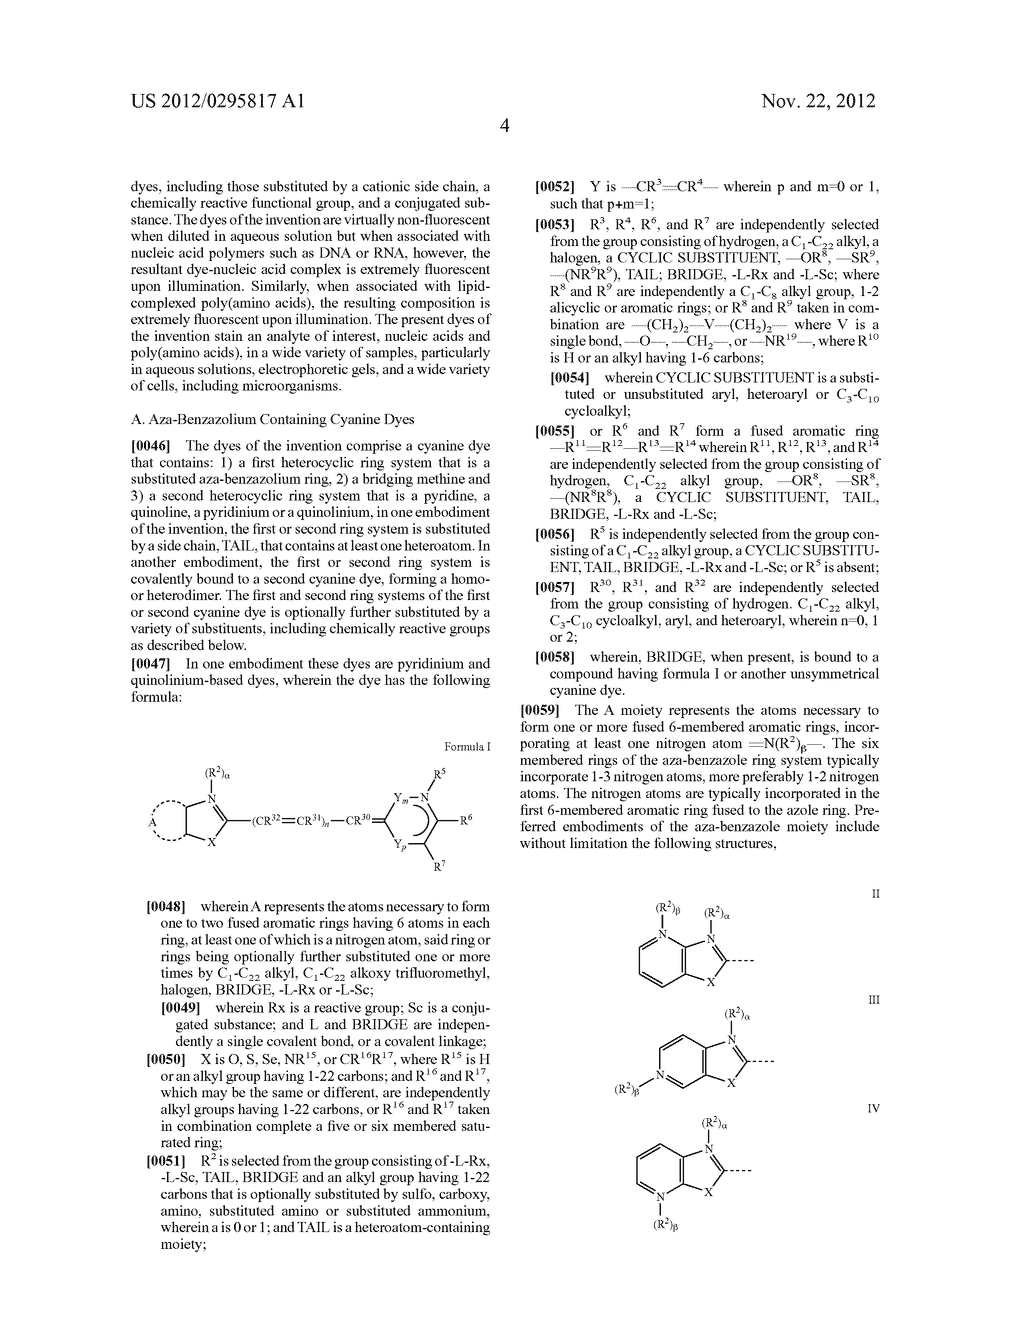 Aza-benzazolium Containing Cyanine Dyes - diagram, schematic, and image 09